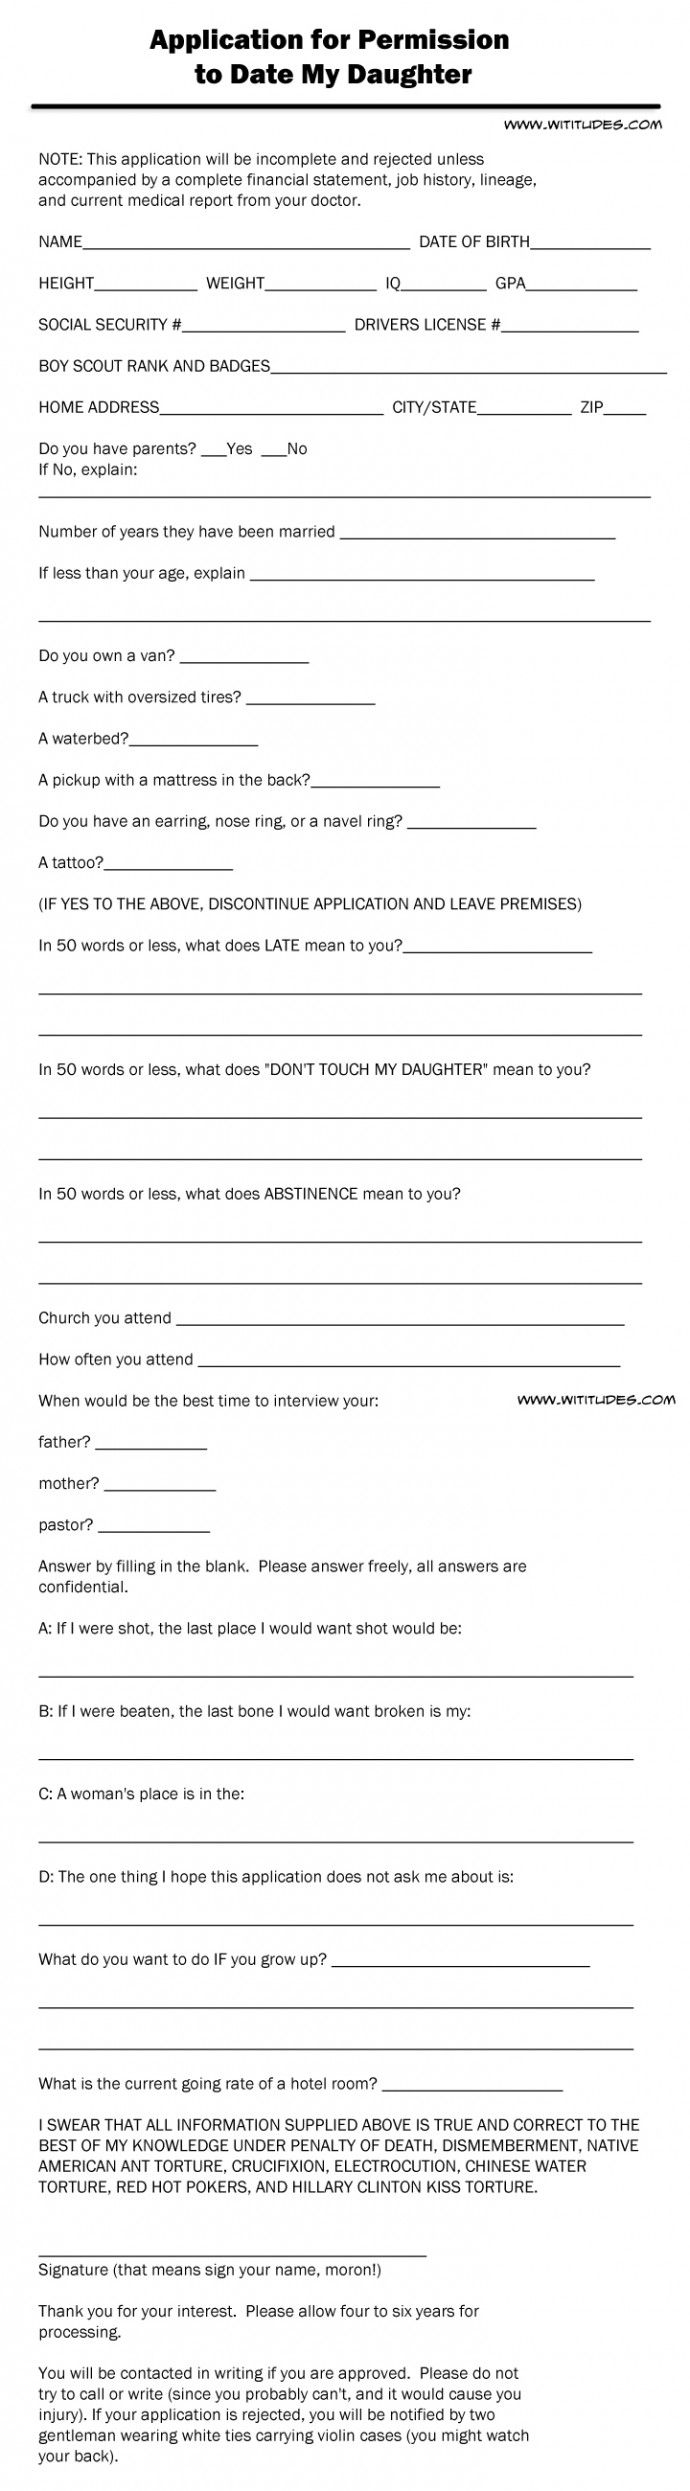 Christian teen dating forms